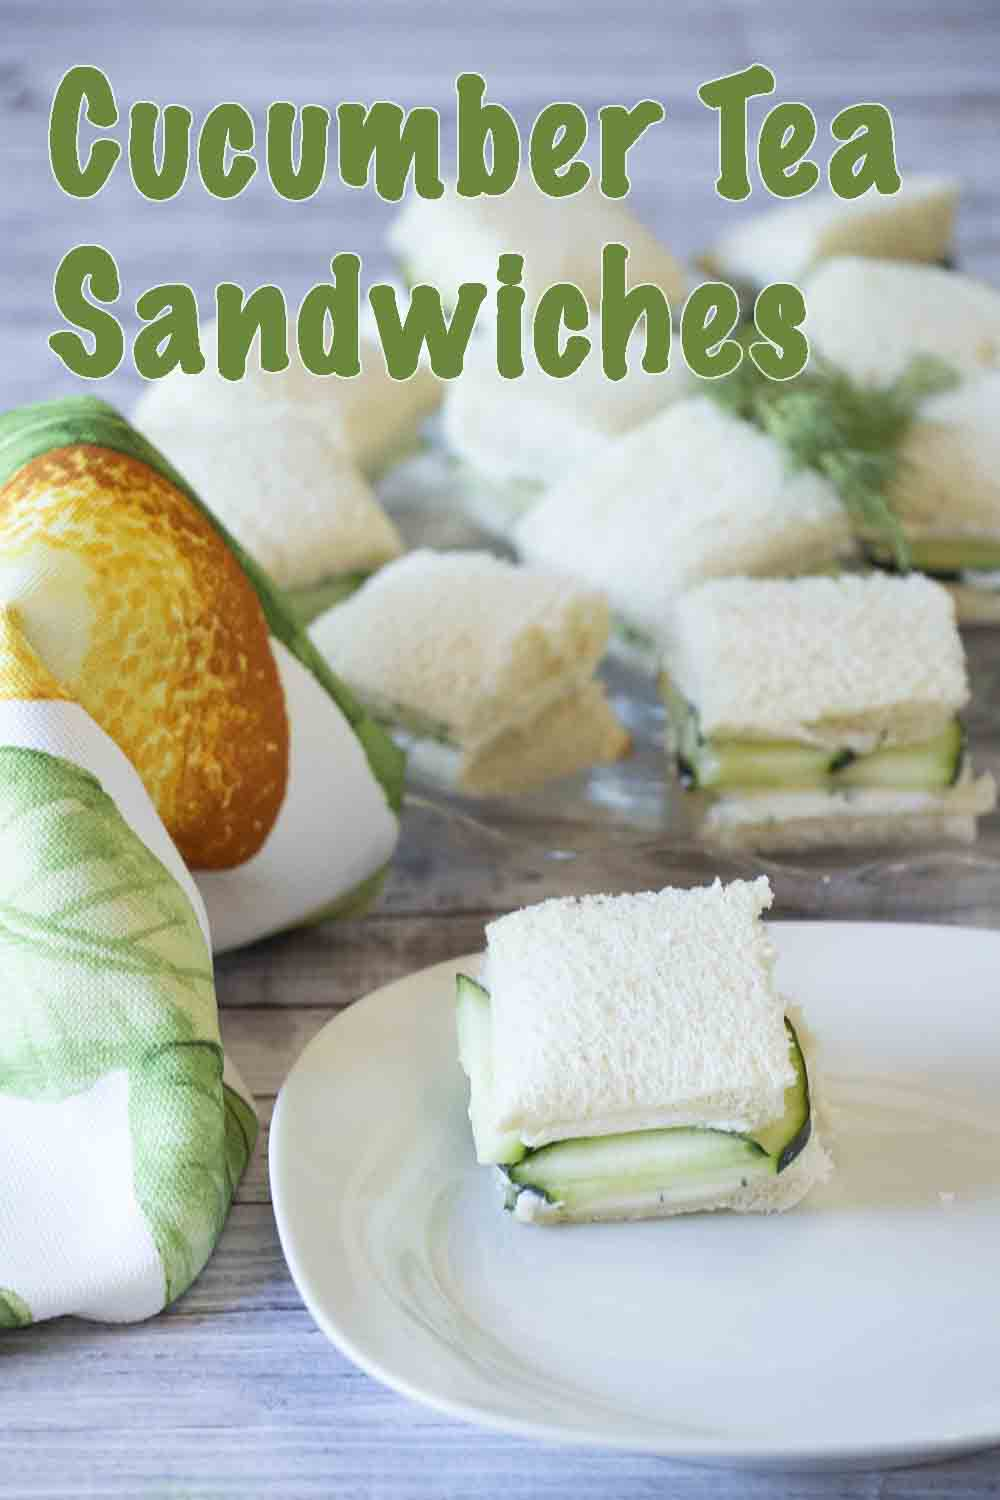 Elegant and tasty, cucumber tea sandwiches are flavored with cream cheese and dill. Perfect for afternoon tea, luncheon, book club or garden party.